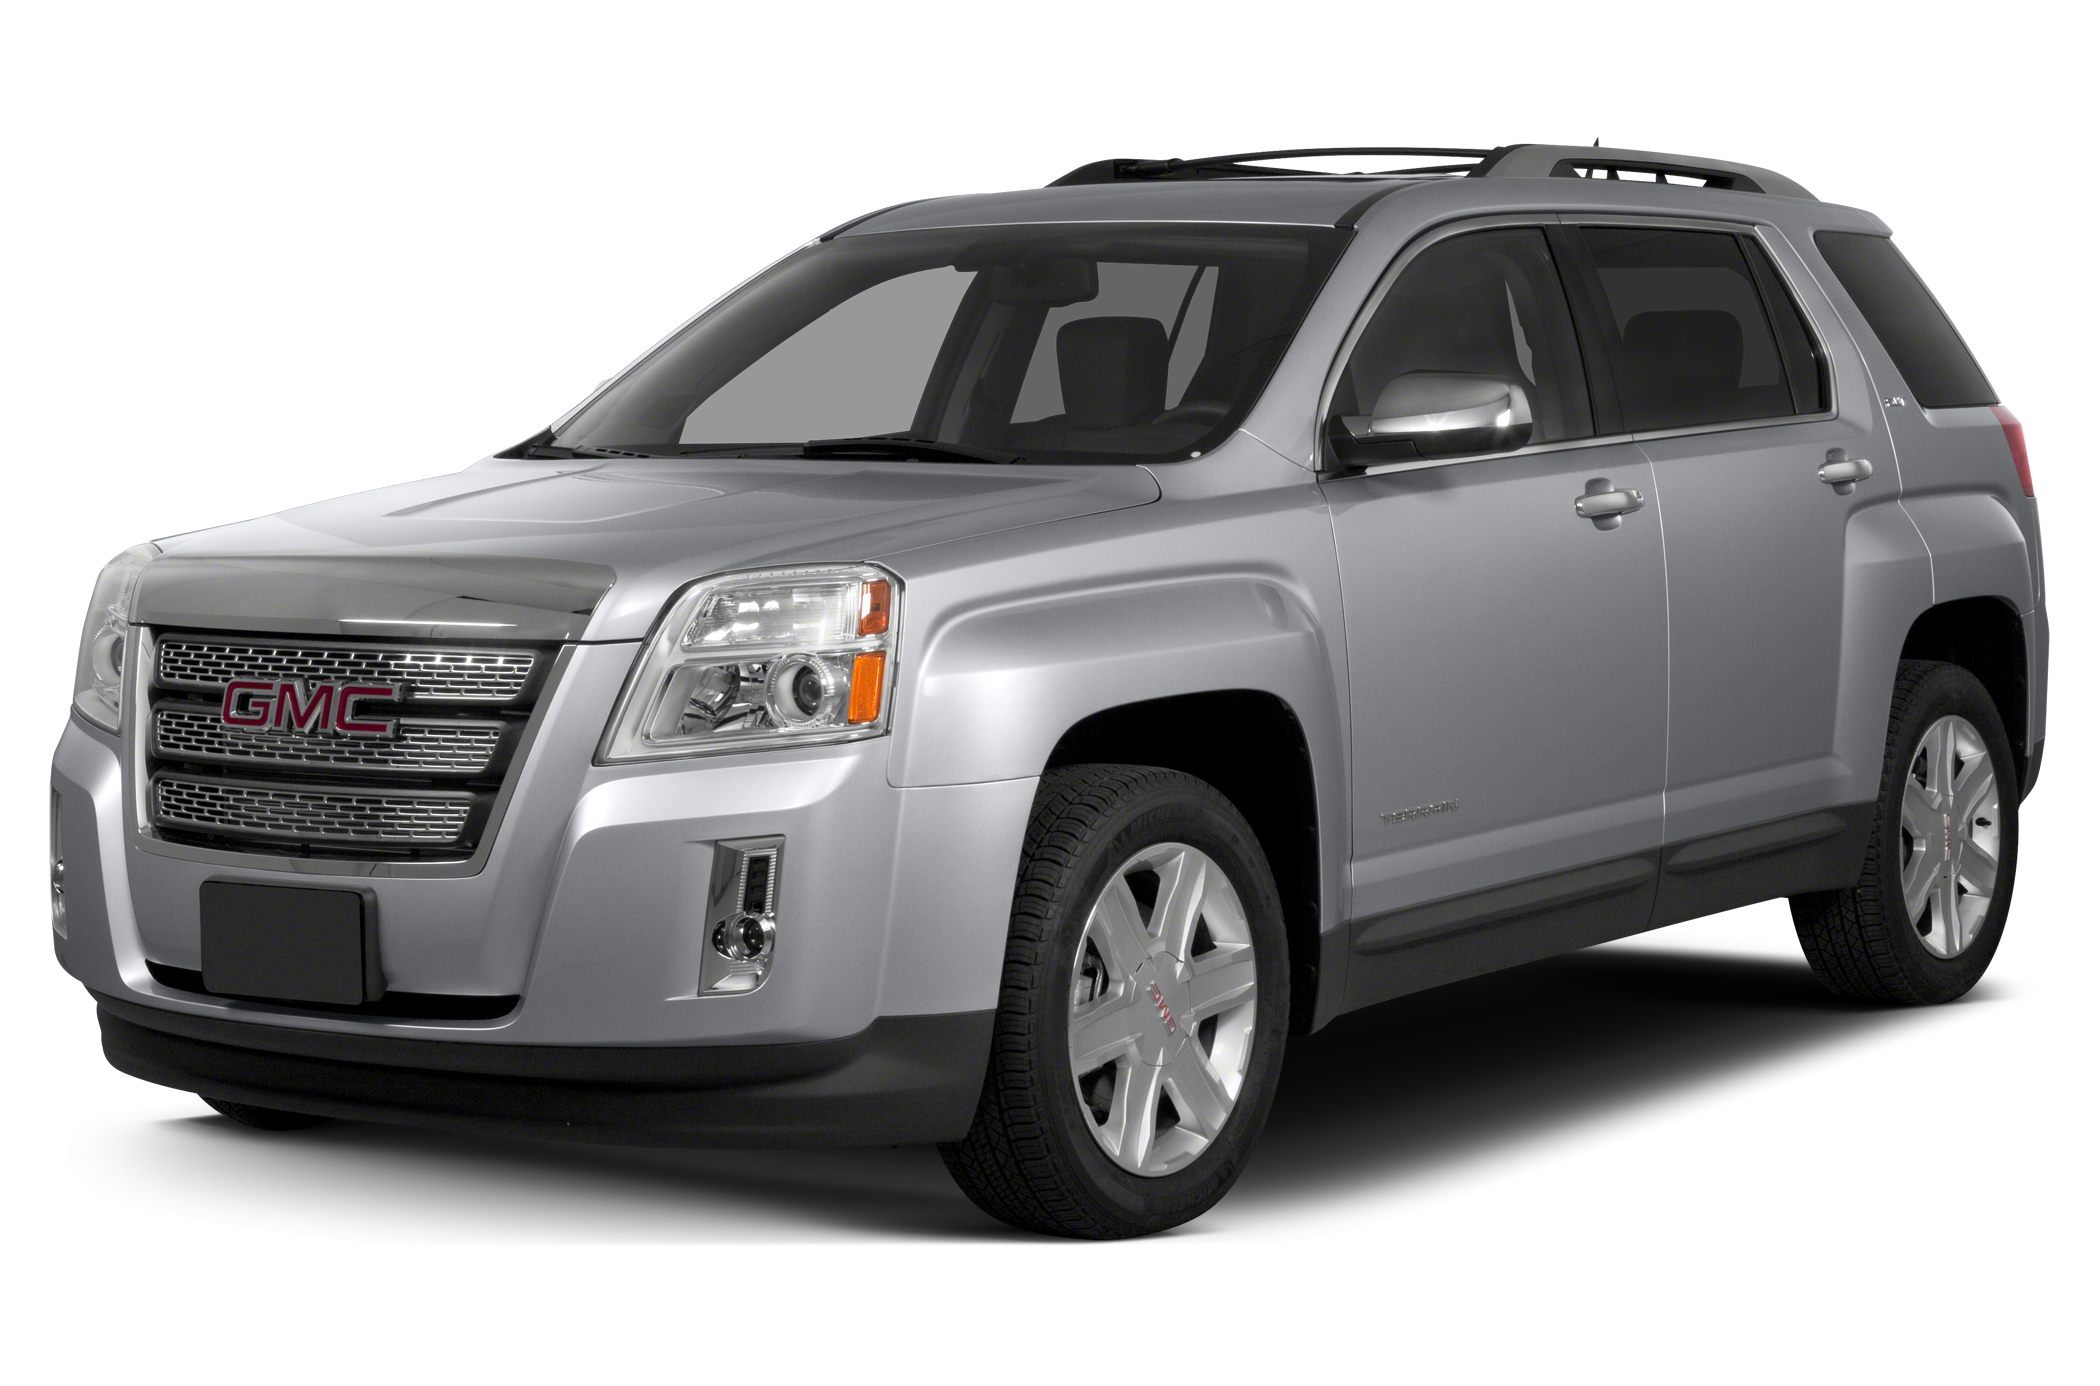 2015 GMC Terrain SLT-1 SUV for sale in Fort Dodge for $33,710 with 5 miles